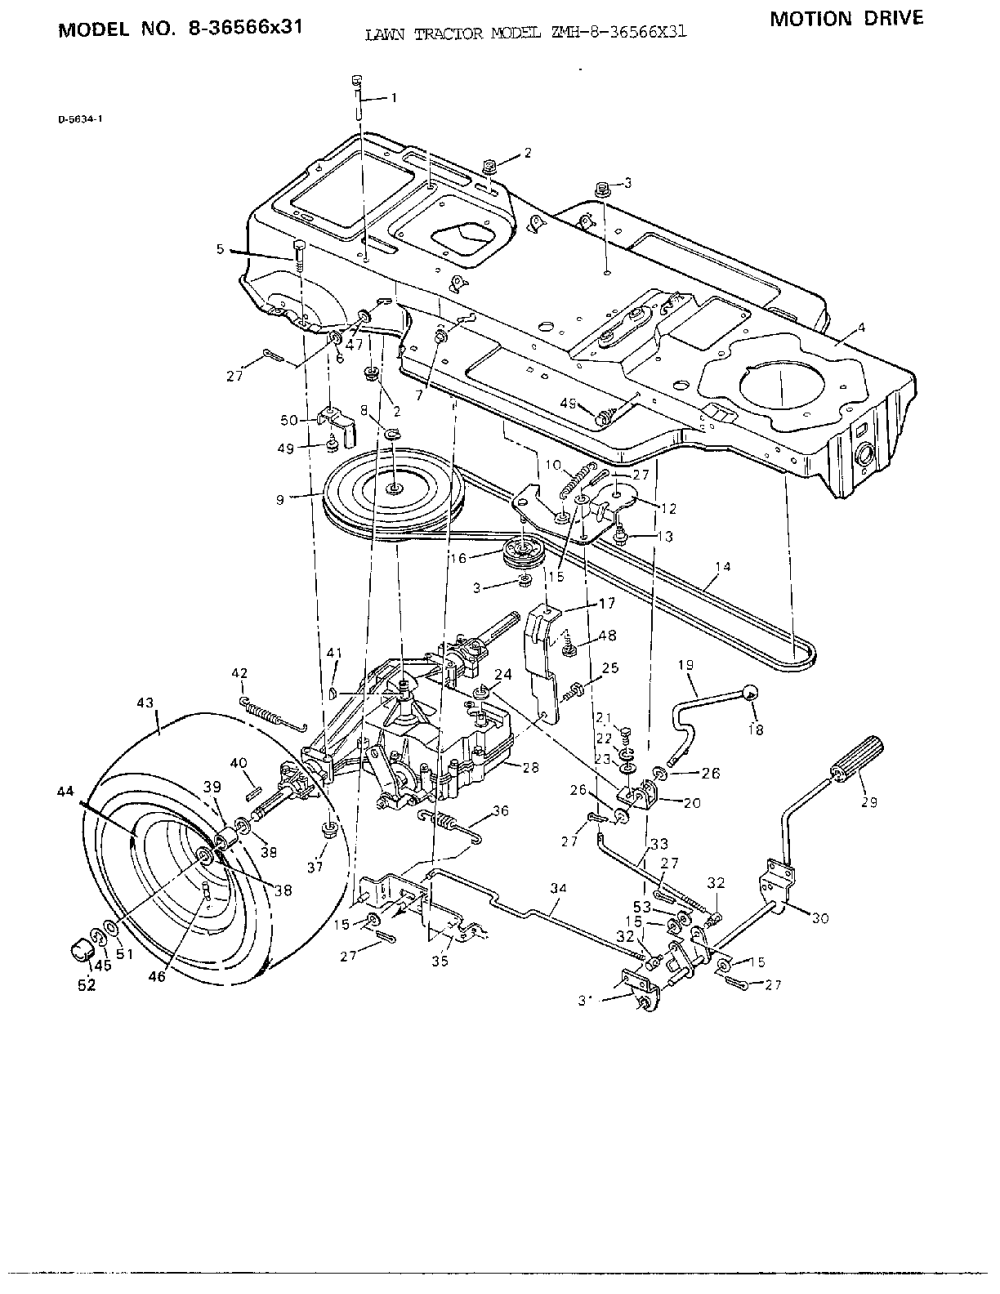 medium resolution of wiring diagram for murray riding lawn mower